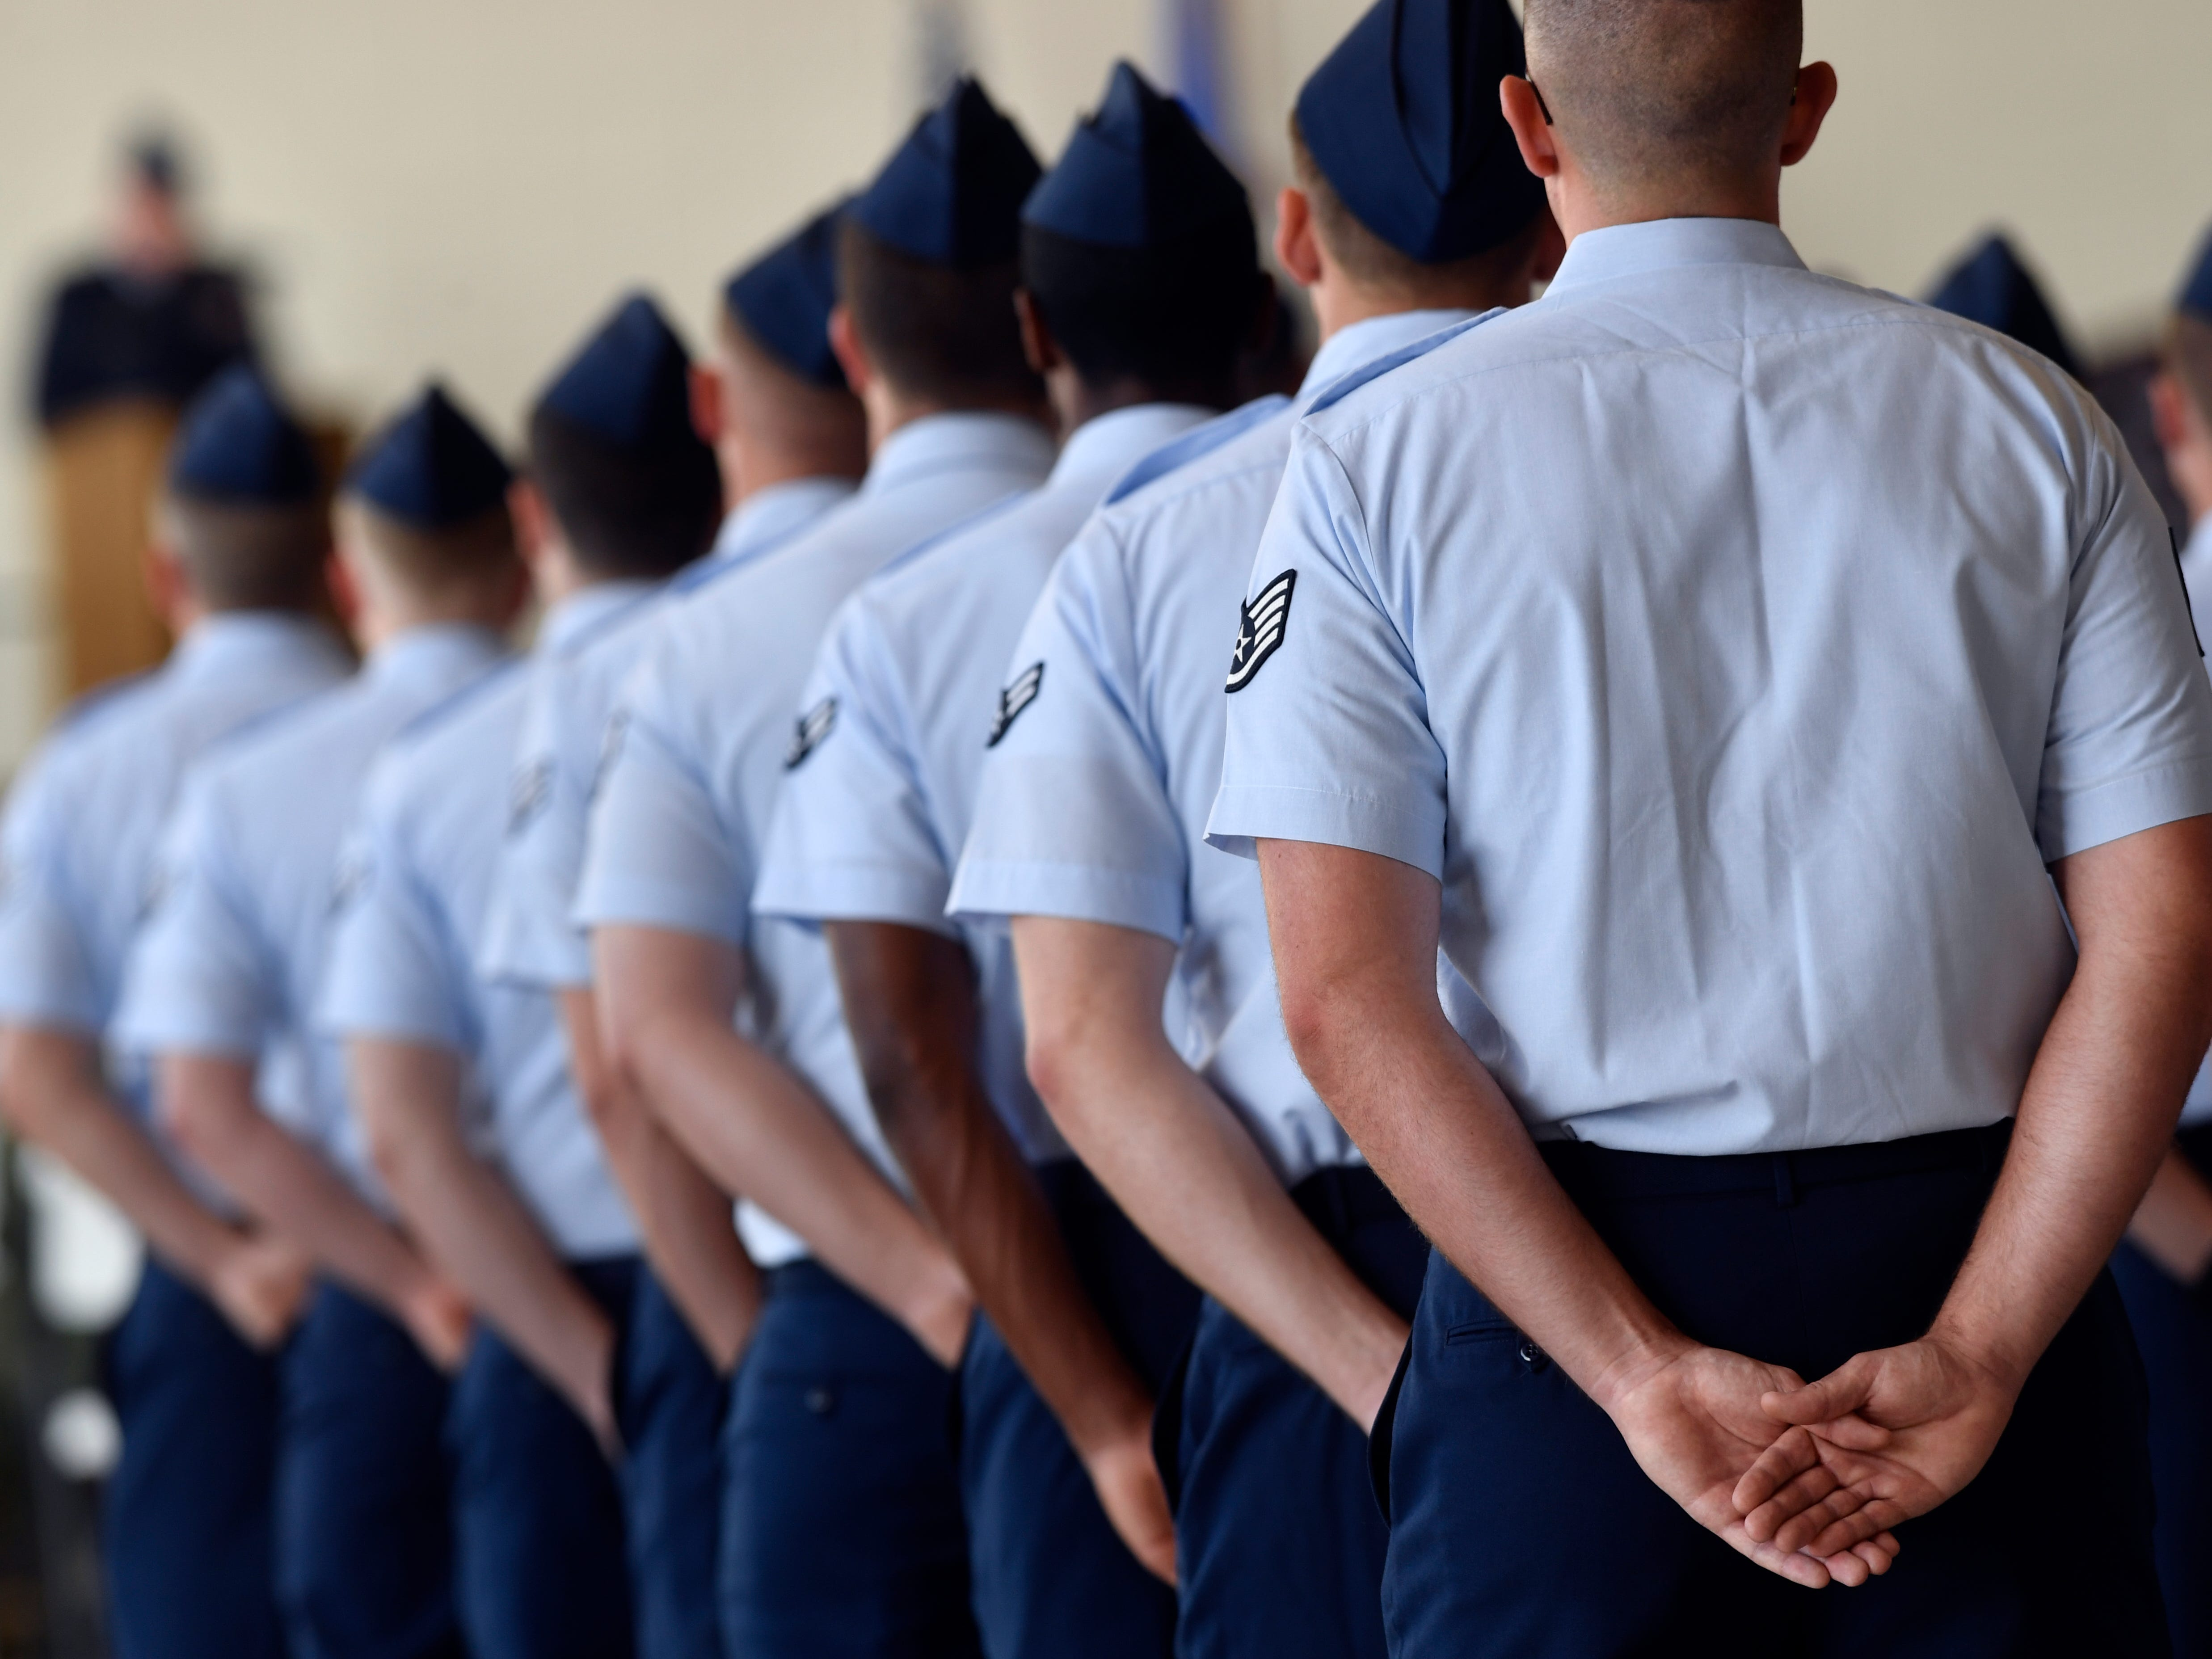 Members of the 317th Airlift Wing stand at parade rest during their unit's assumption of command Friday August 3, 2018 at Dyess Air Force Base. Col. Jeffrey Menasco was given command of the wing by Major Gen. Sam Barrett, Commander of the 18th Air Force.